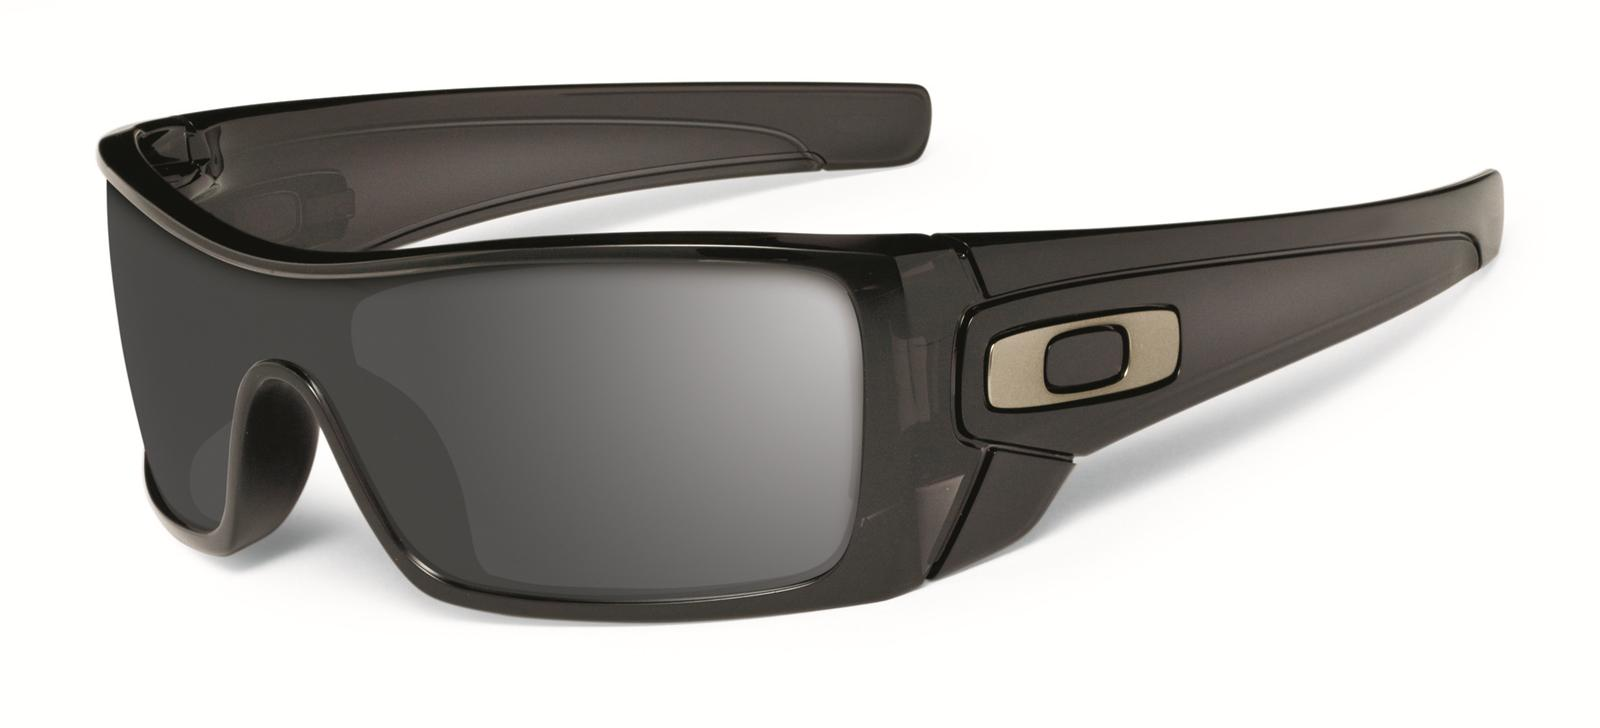 59b877a563 Oakley Batwolf Sunglasses OO9101-01 - Free Shipping on Orders Over  99 at  Summit Racing